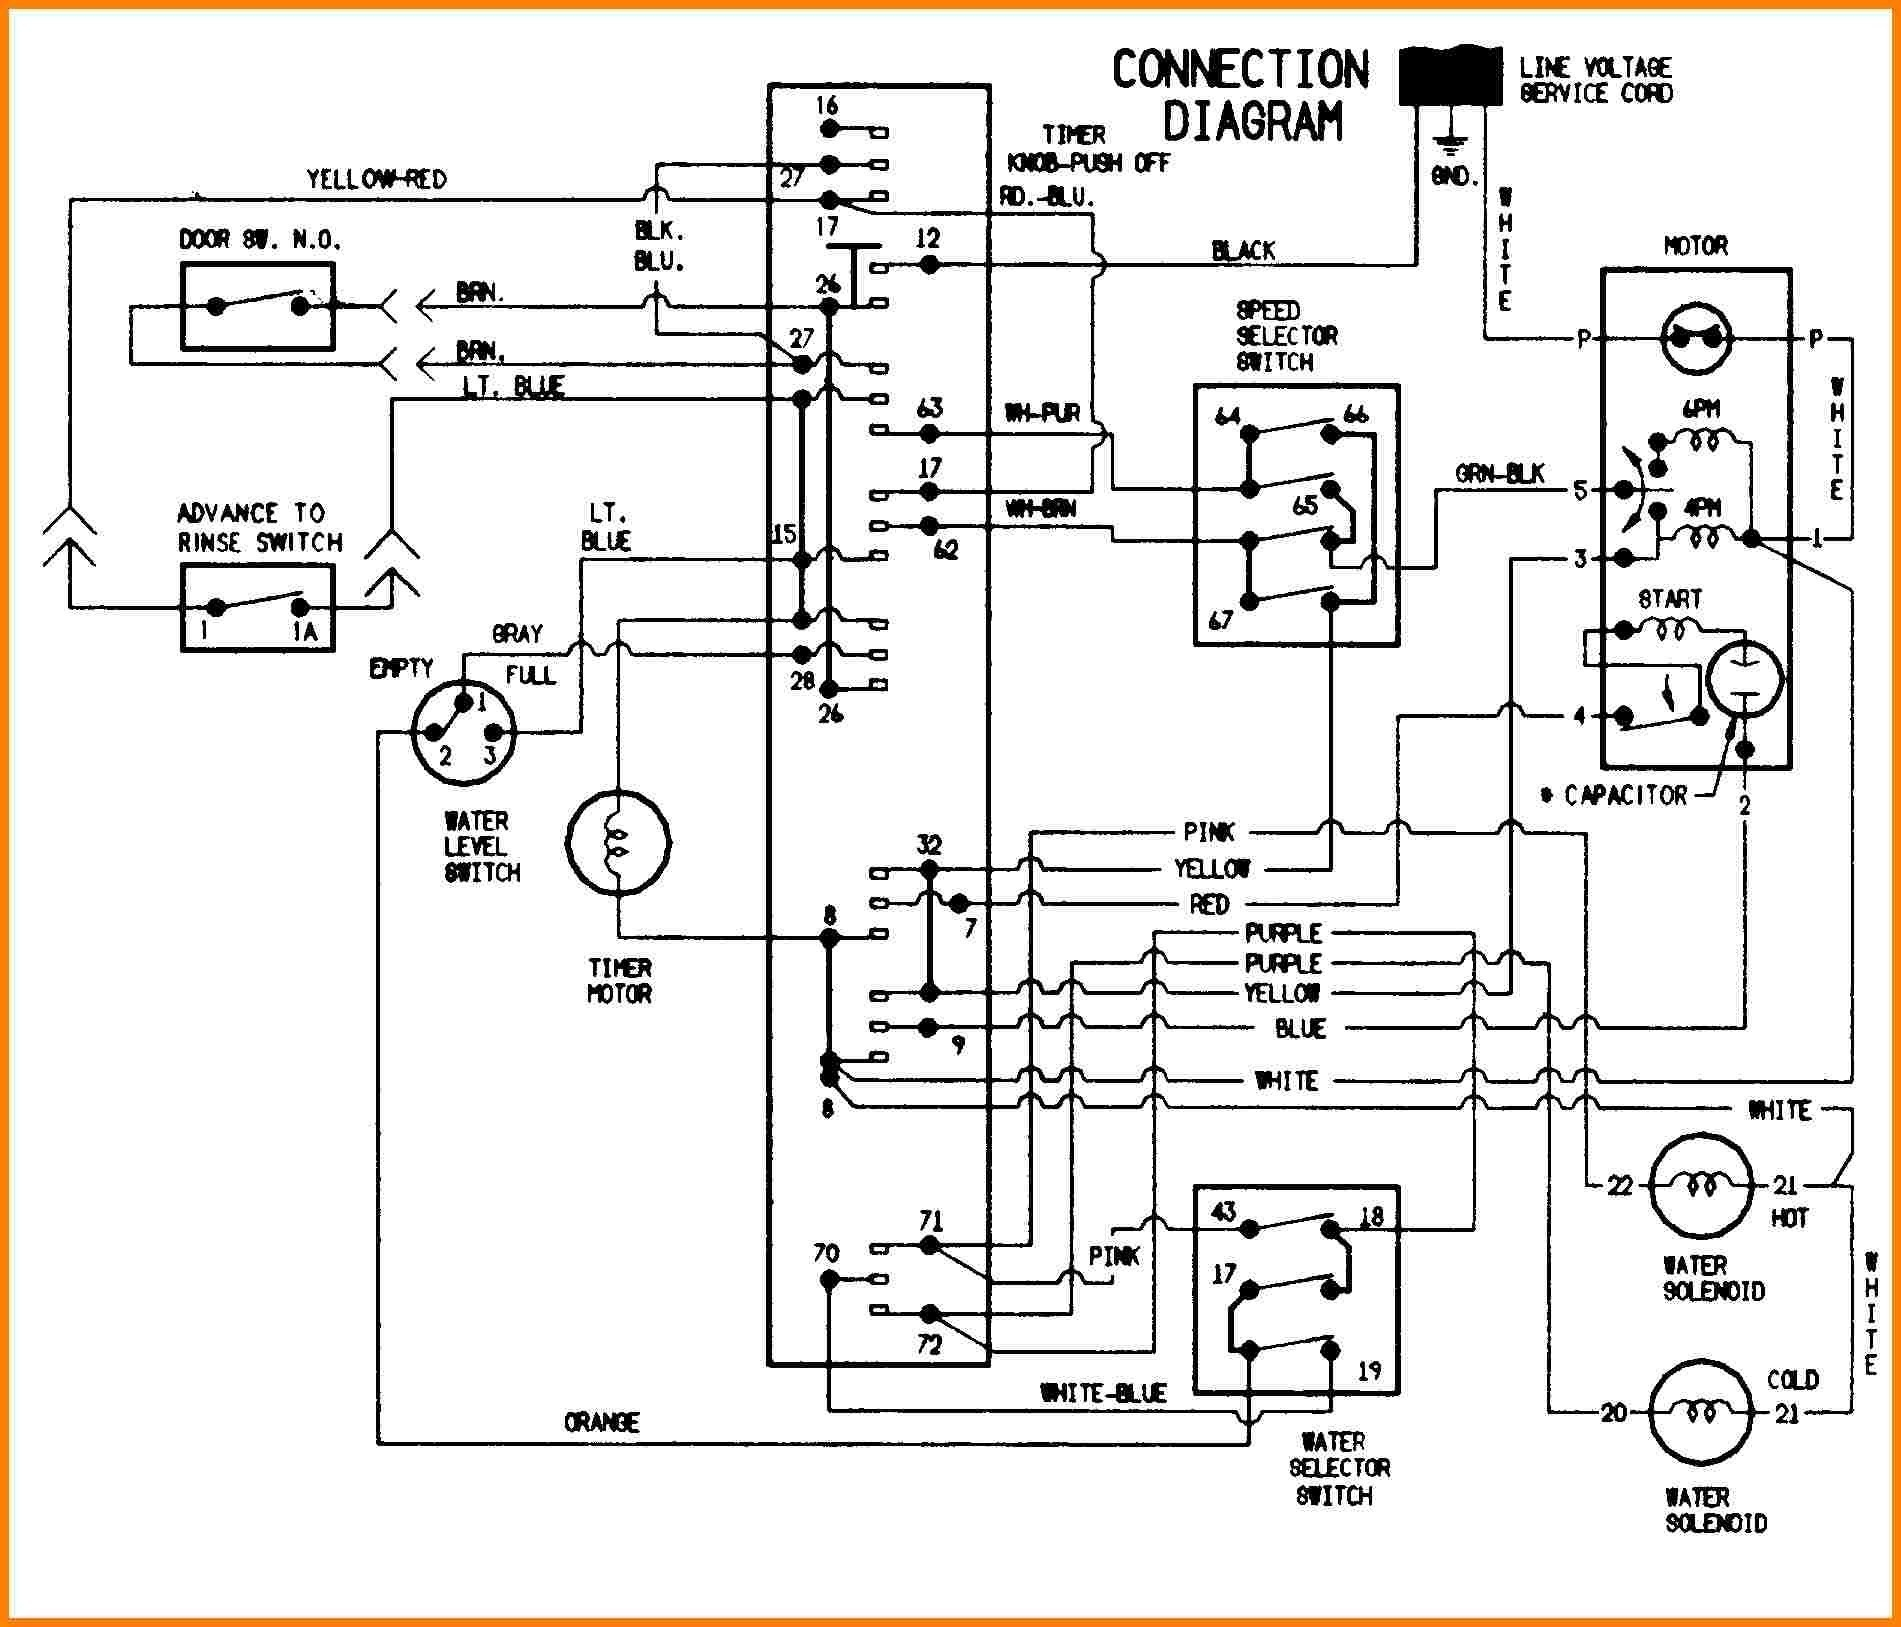 dryer schematic wiring diagram